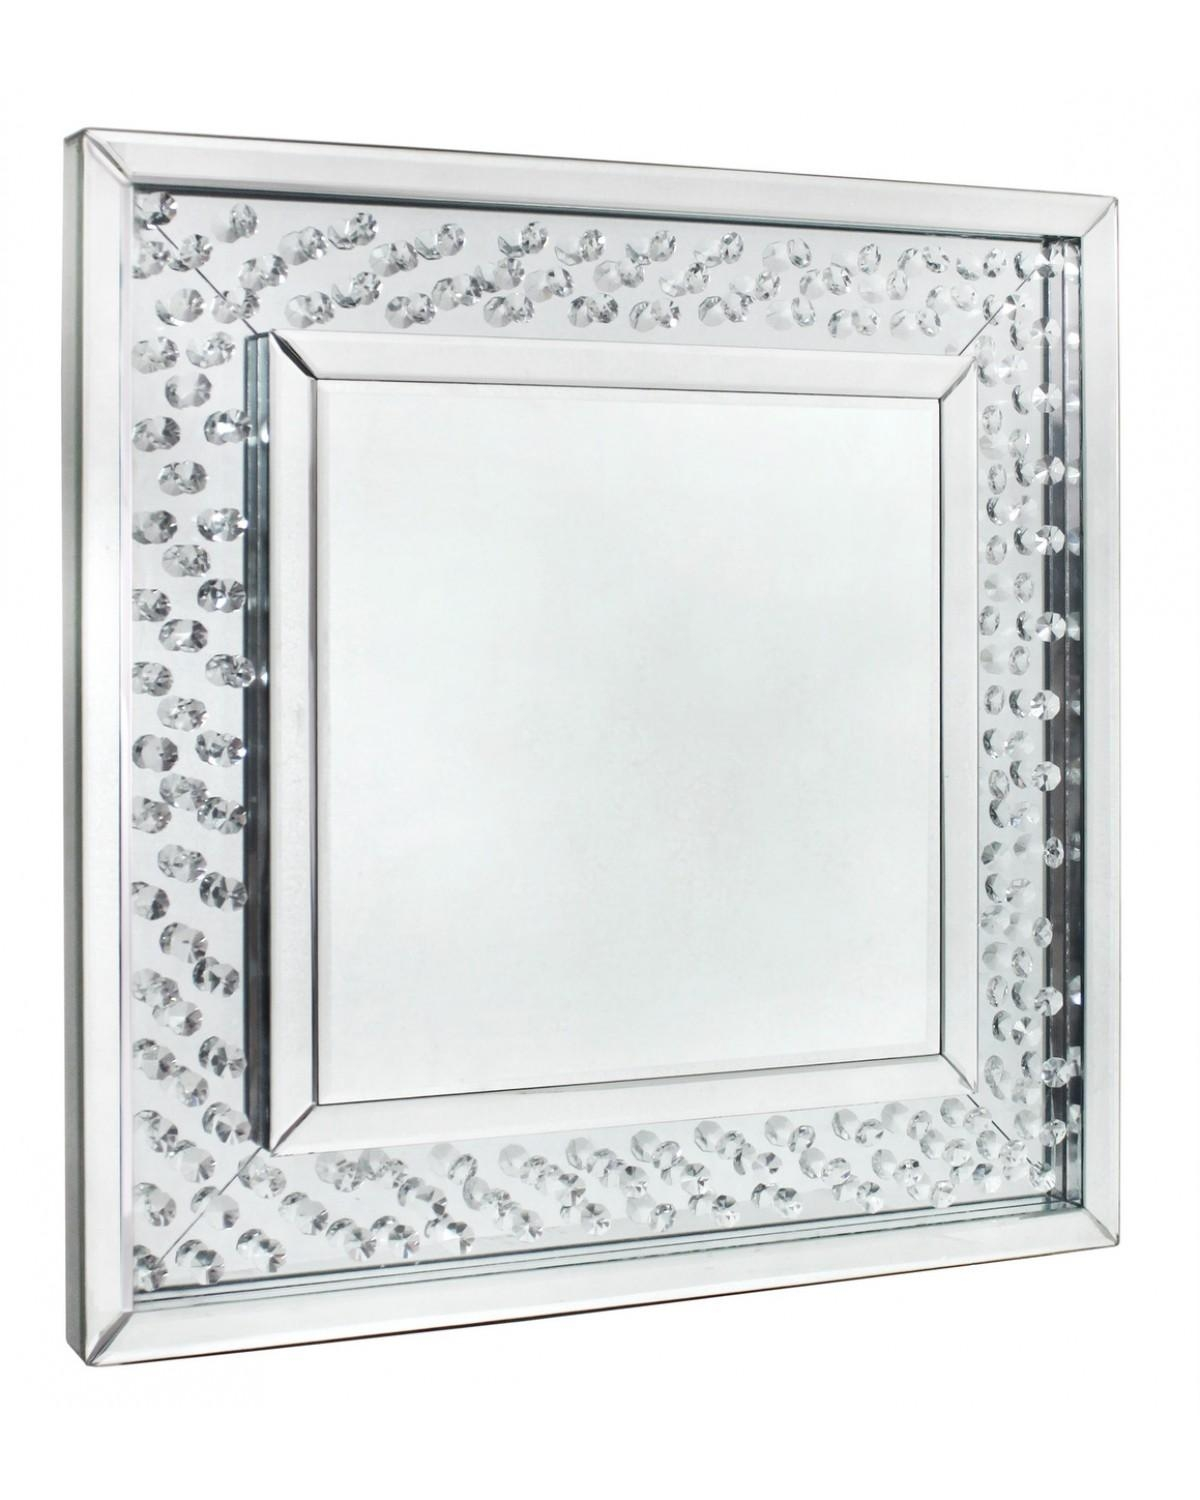 Astoria Floating Crystal Square Wall Mirror In Mirror With Crystals (Image 2 of 20)